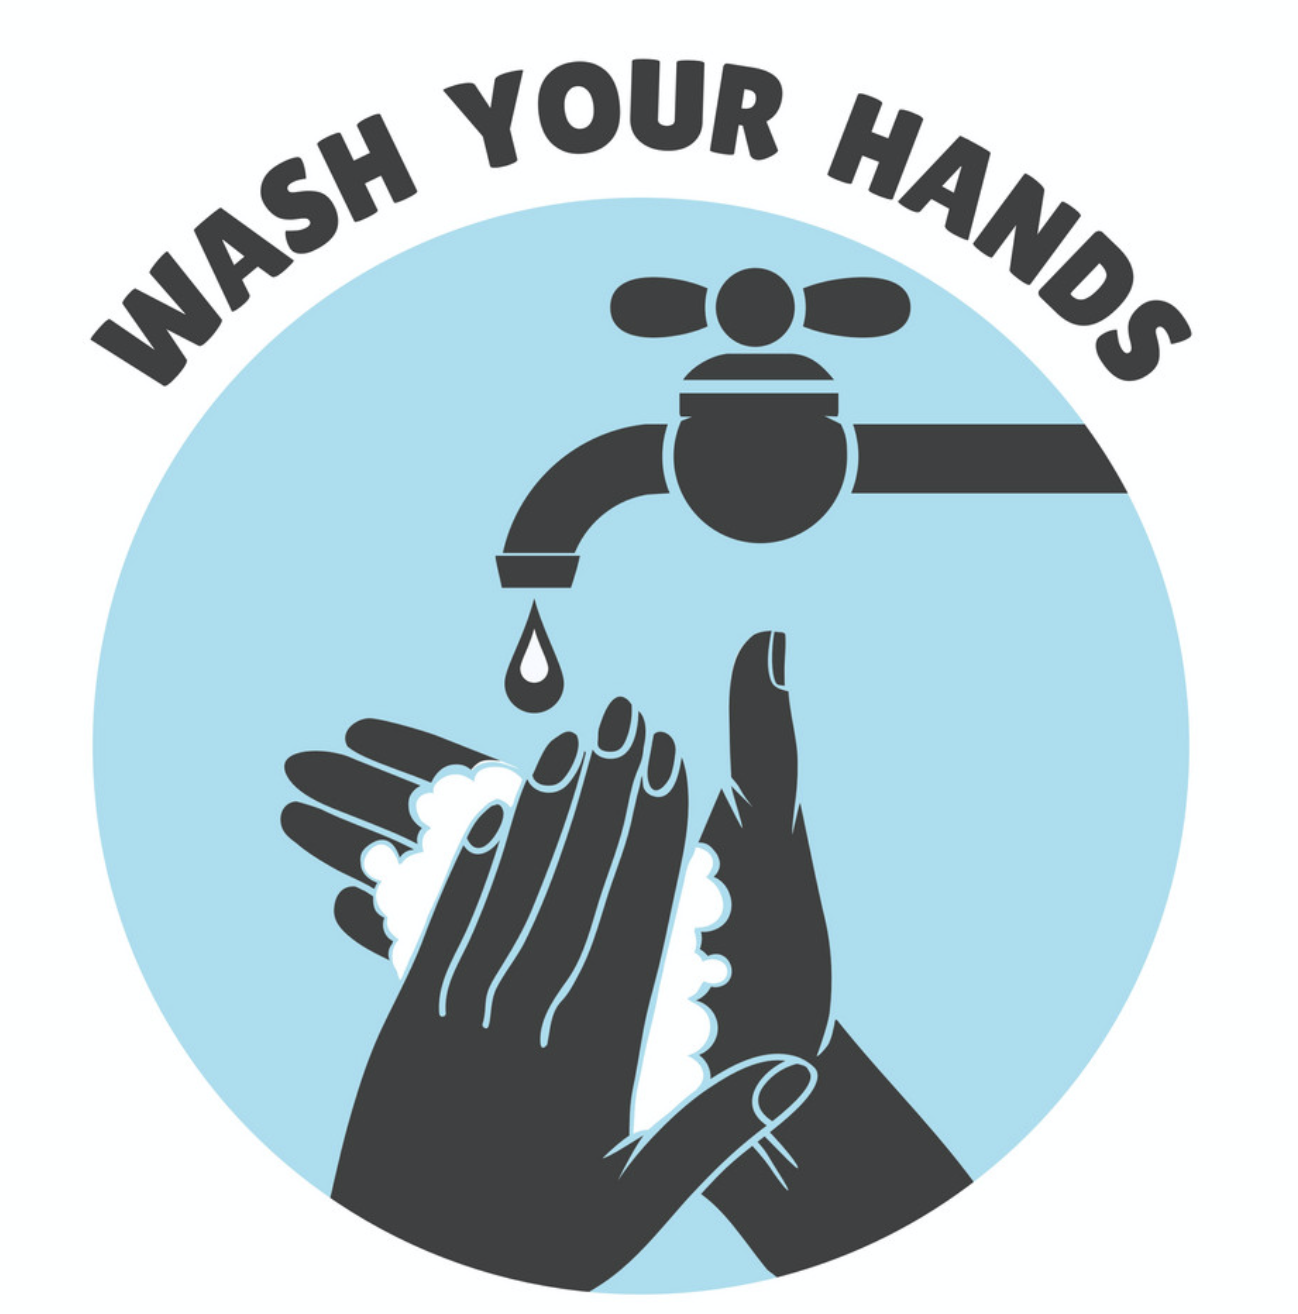 Corona Virus: Hand Hygiene, the How To by DPB Attorneys & Conveyancers